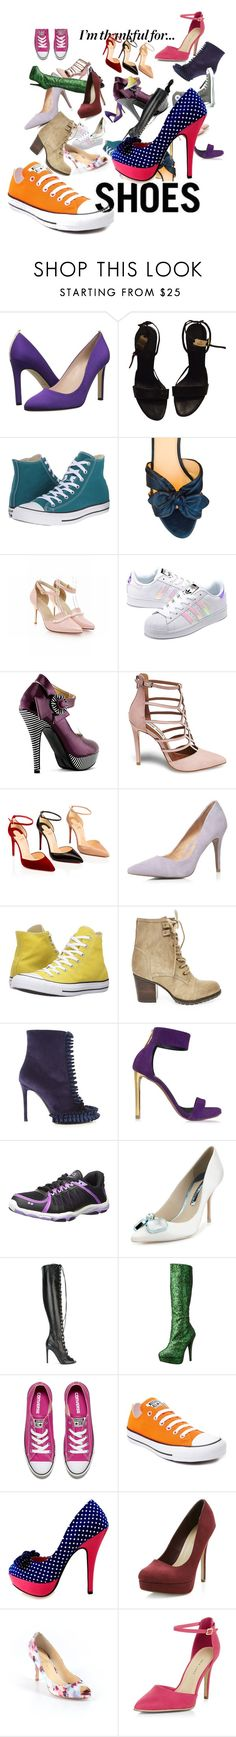 """""""thankful for SHOES!!!!!"""" by the-pug-life ❤ liked on Polyvore featuring SJP, Gucci, Converse, Prada, adidas Originals, Steve Madden, Dorothy Perkins, Marco de Vincenzo, Roberto Cavalli and Rykä"""